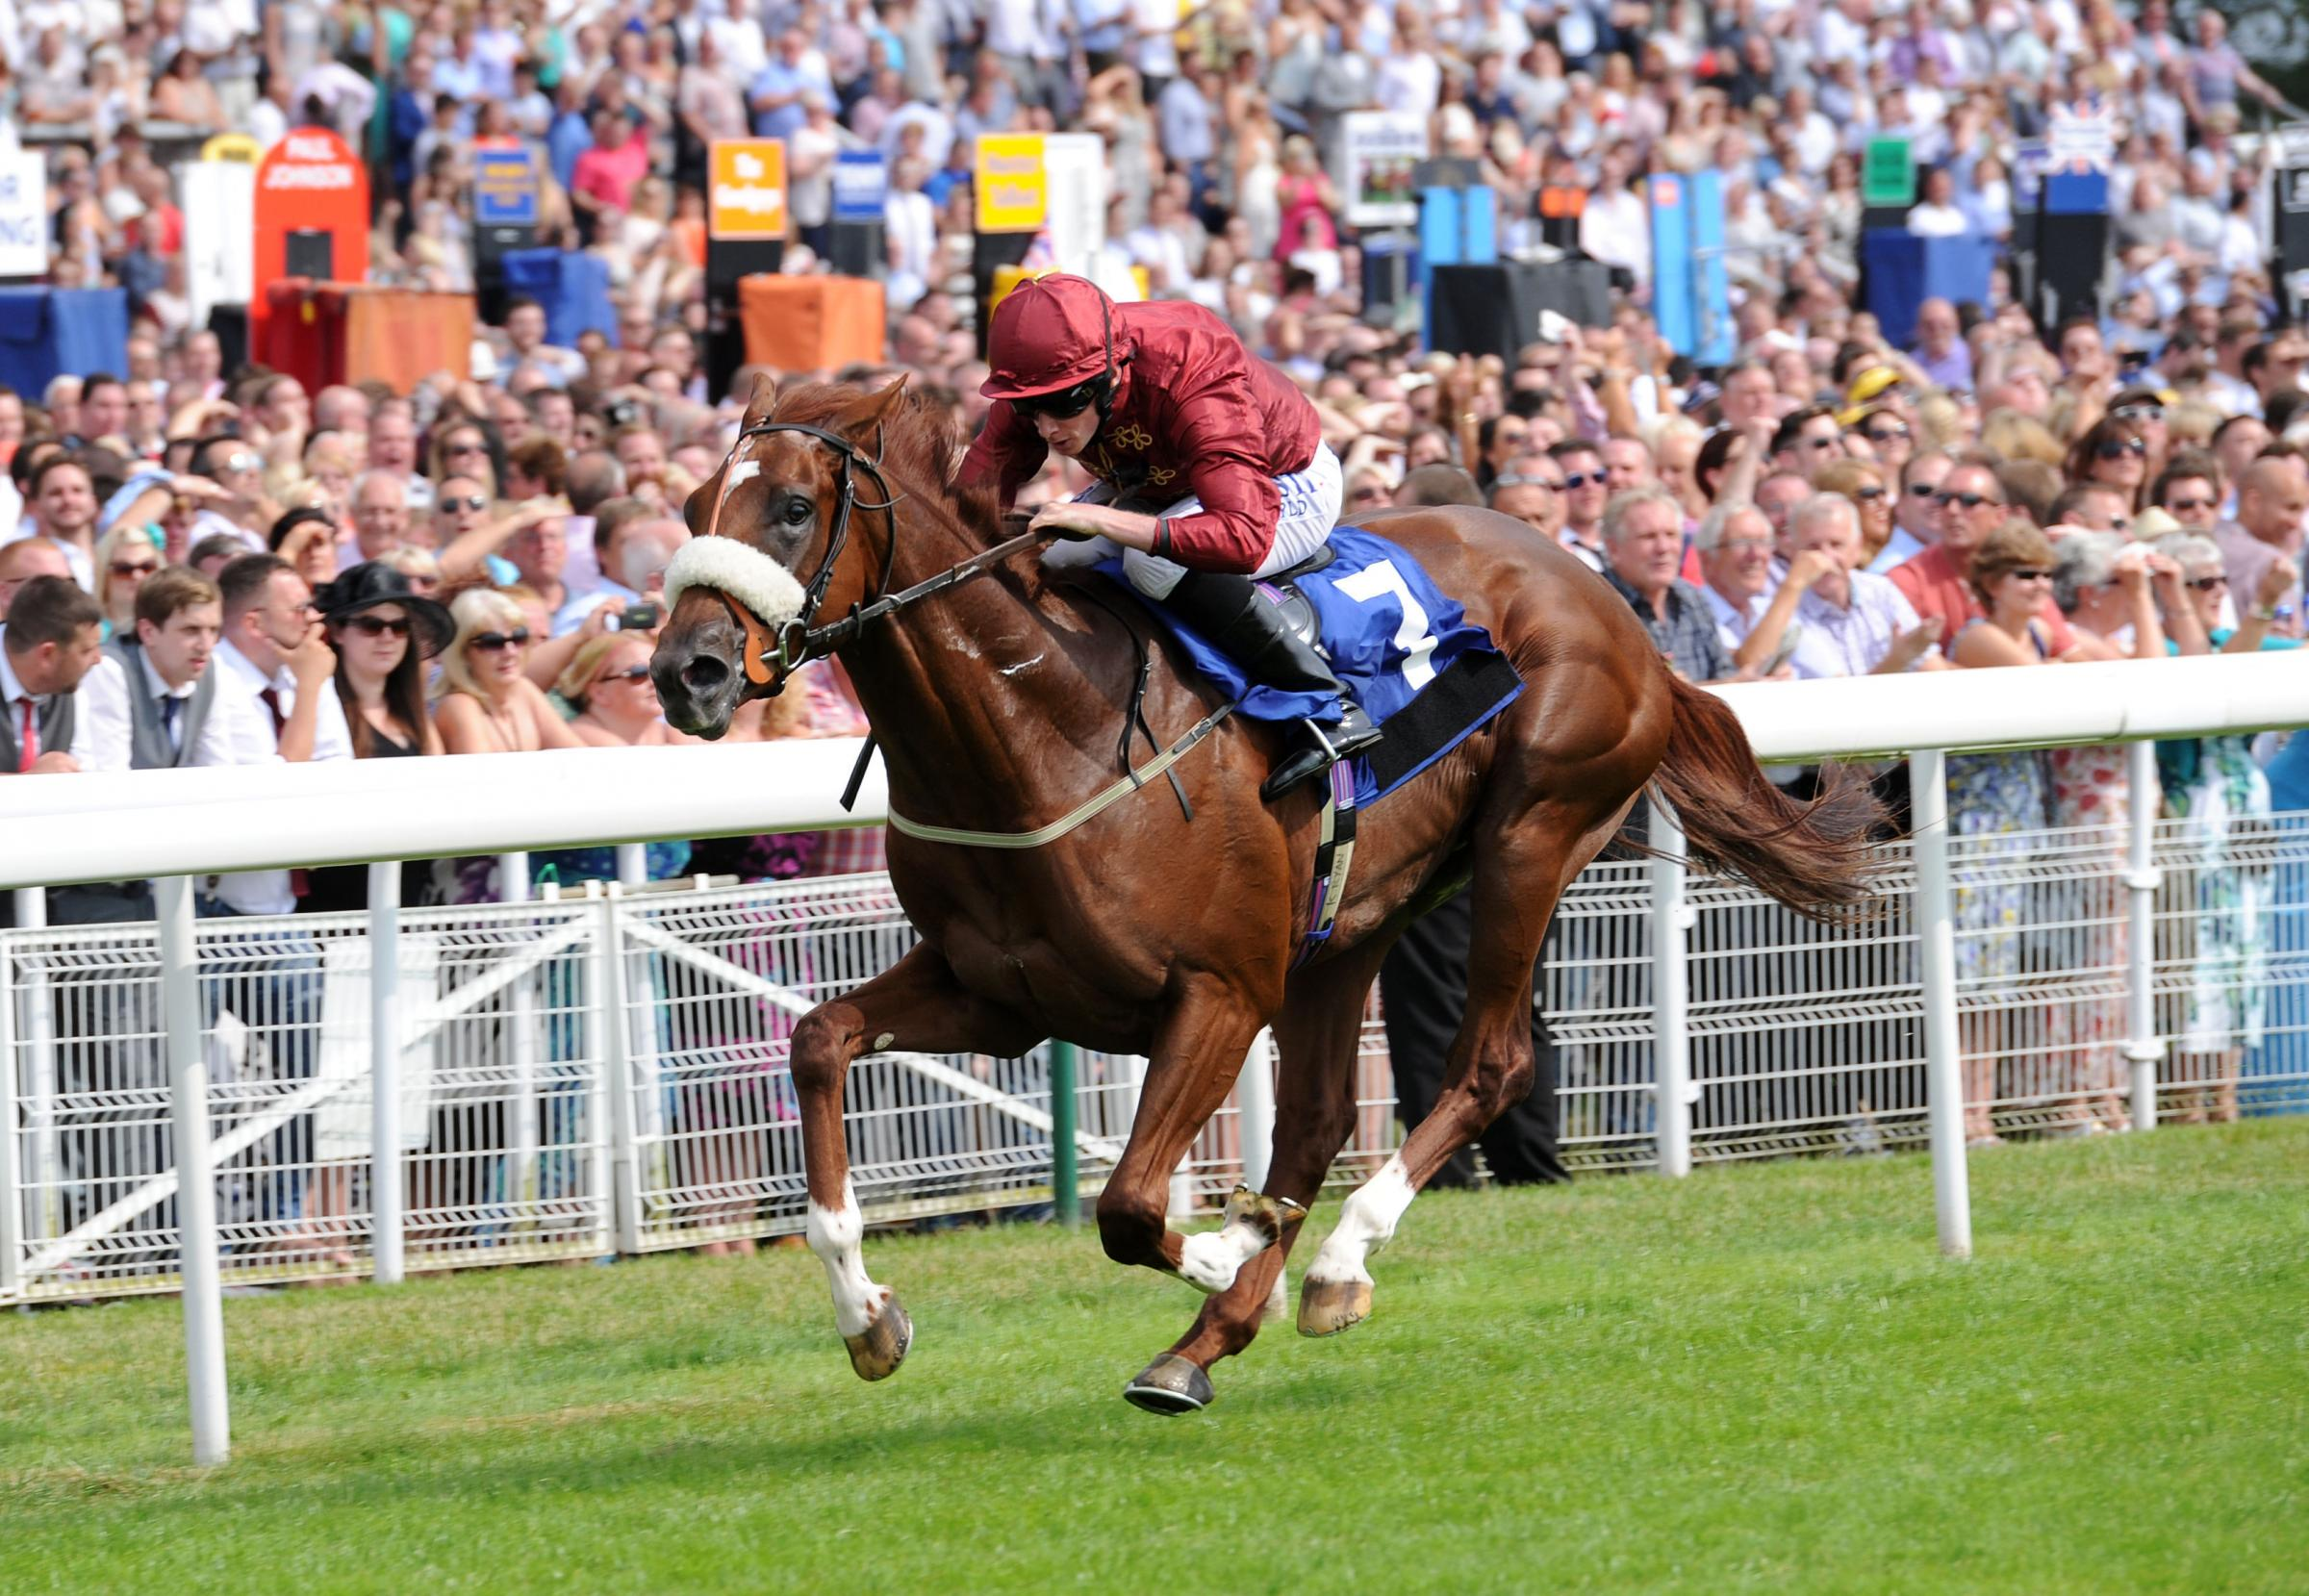 Flaming Spear, ridden by Ryan Moore, wins the John Smith's Median Auction Maiden Stakes on John Smith's Cup day at York Racecourse. Picture: Anna Gowthorpe/PA Wire